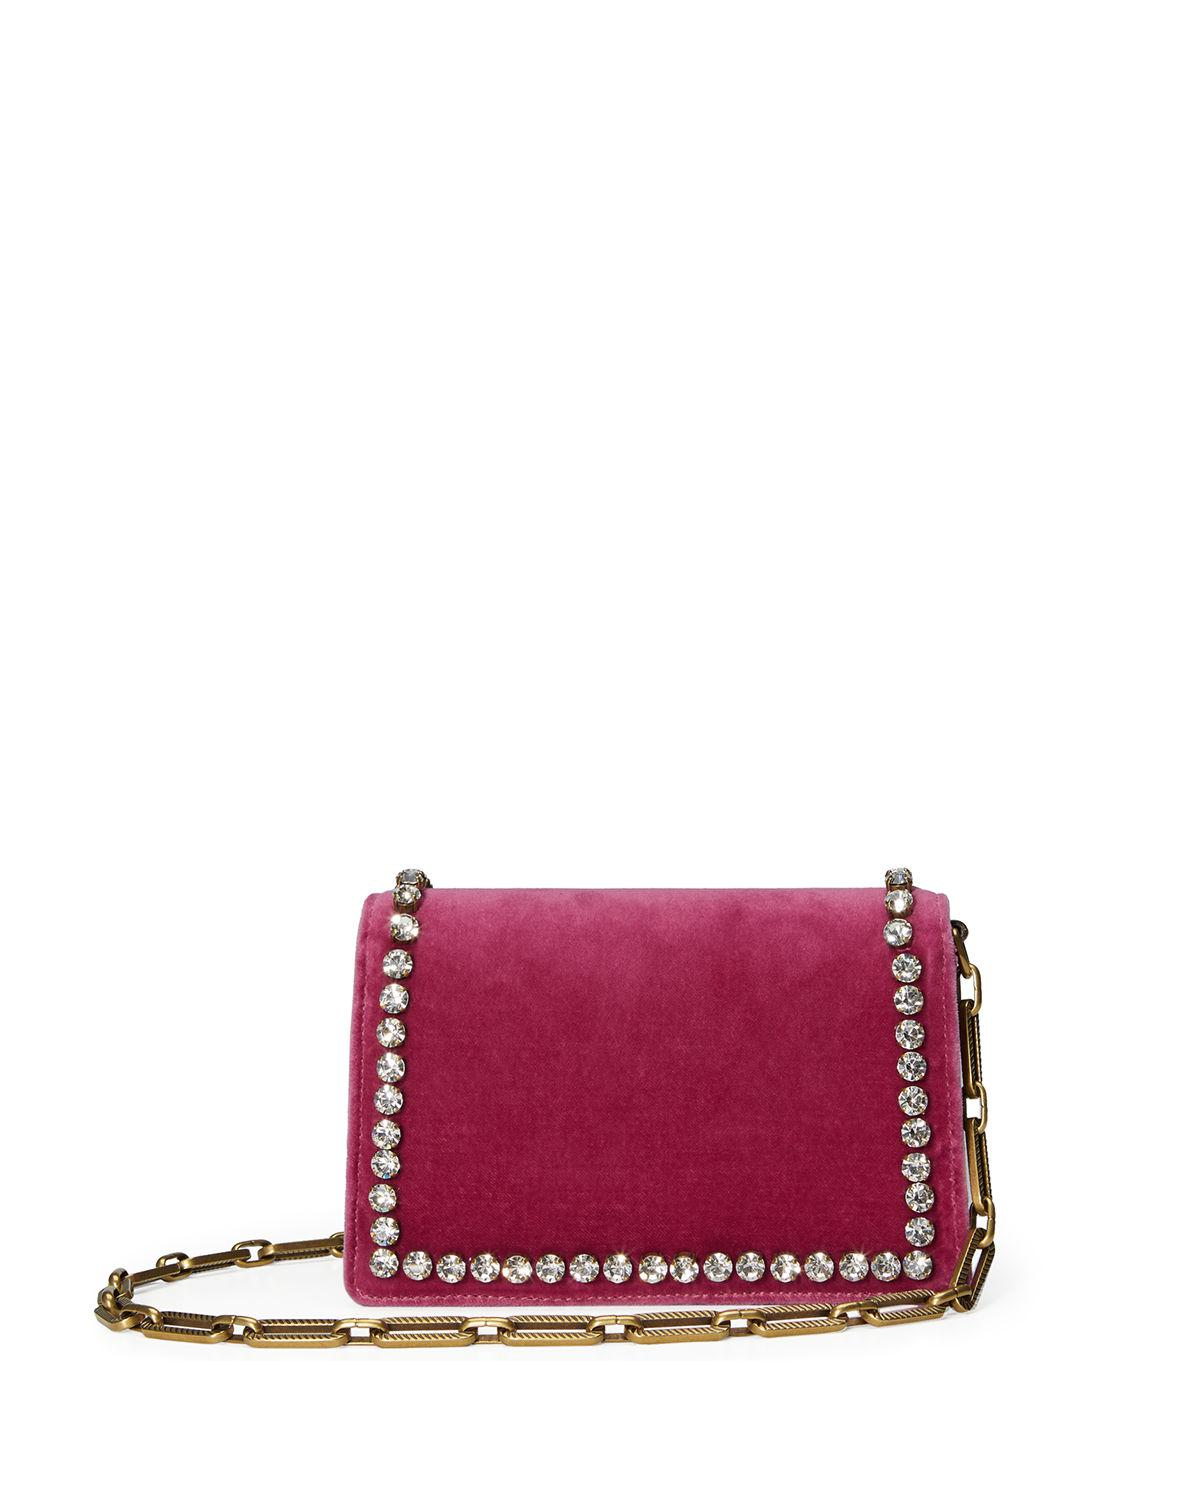 Lyst - Gucci Broadway Small Velvet Bee Shoulder Bag in Pink fe2a29888c0f4